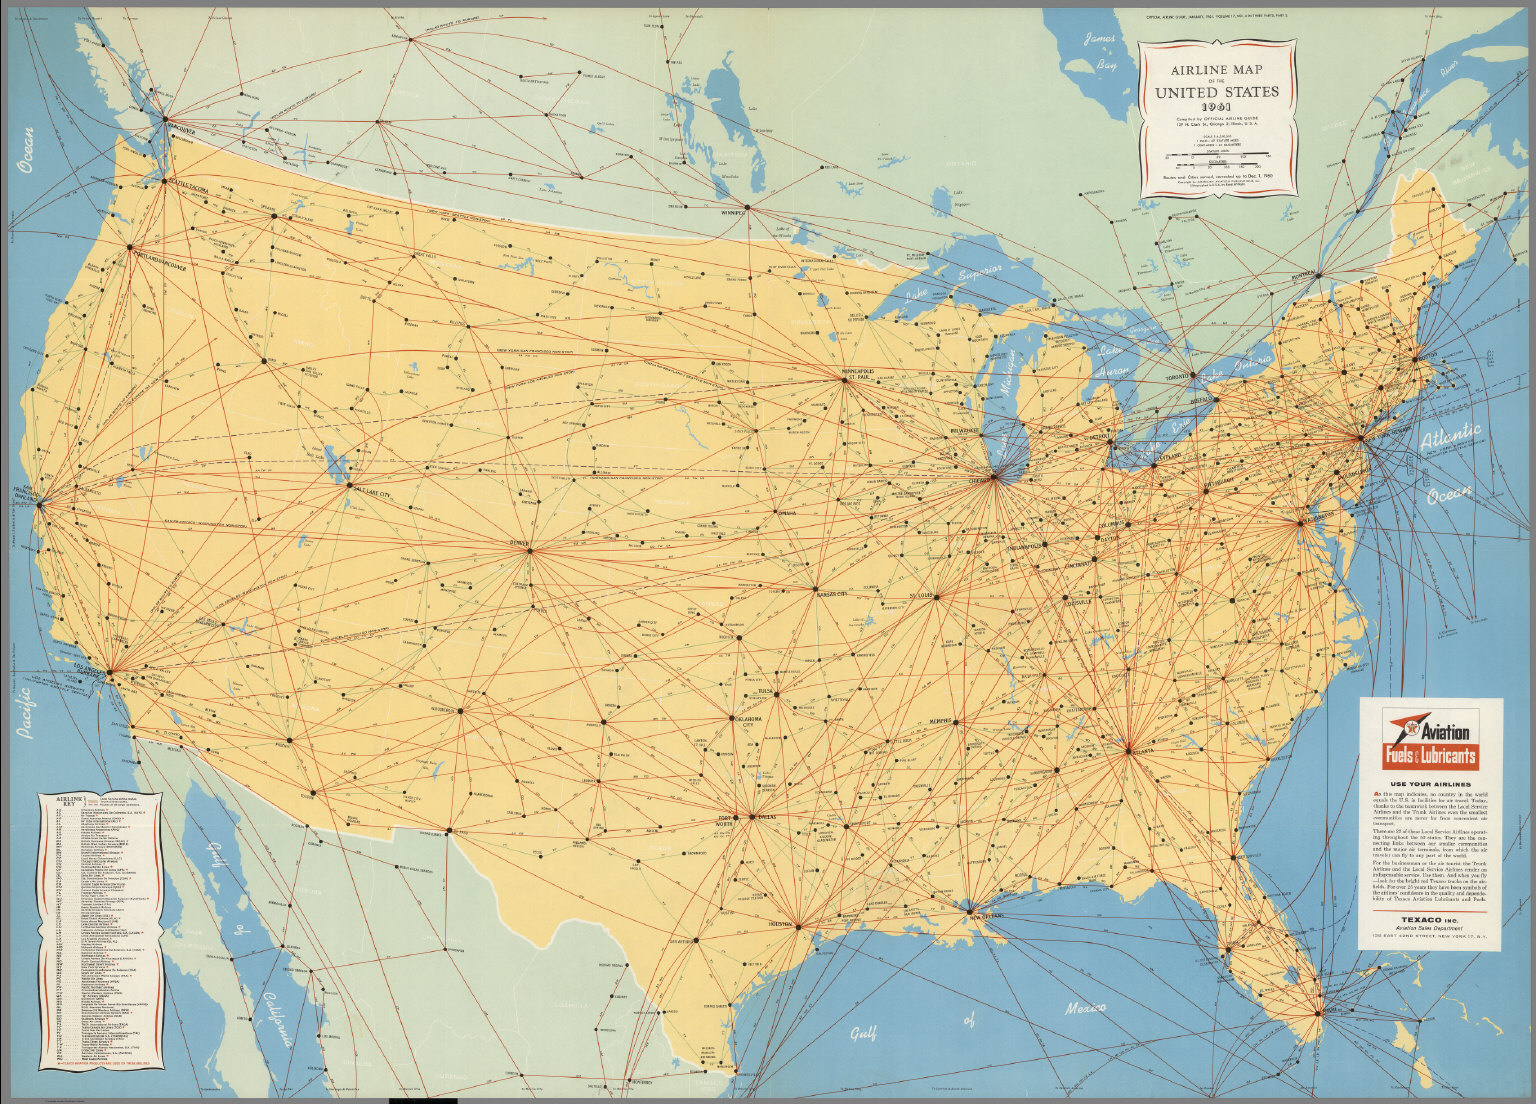 Airline Map of the United States 1961.